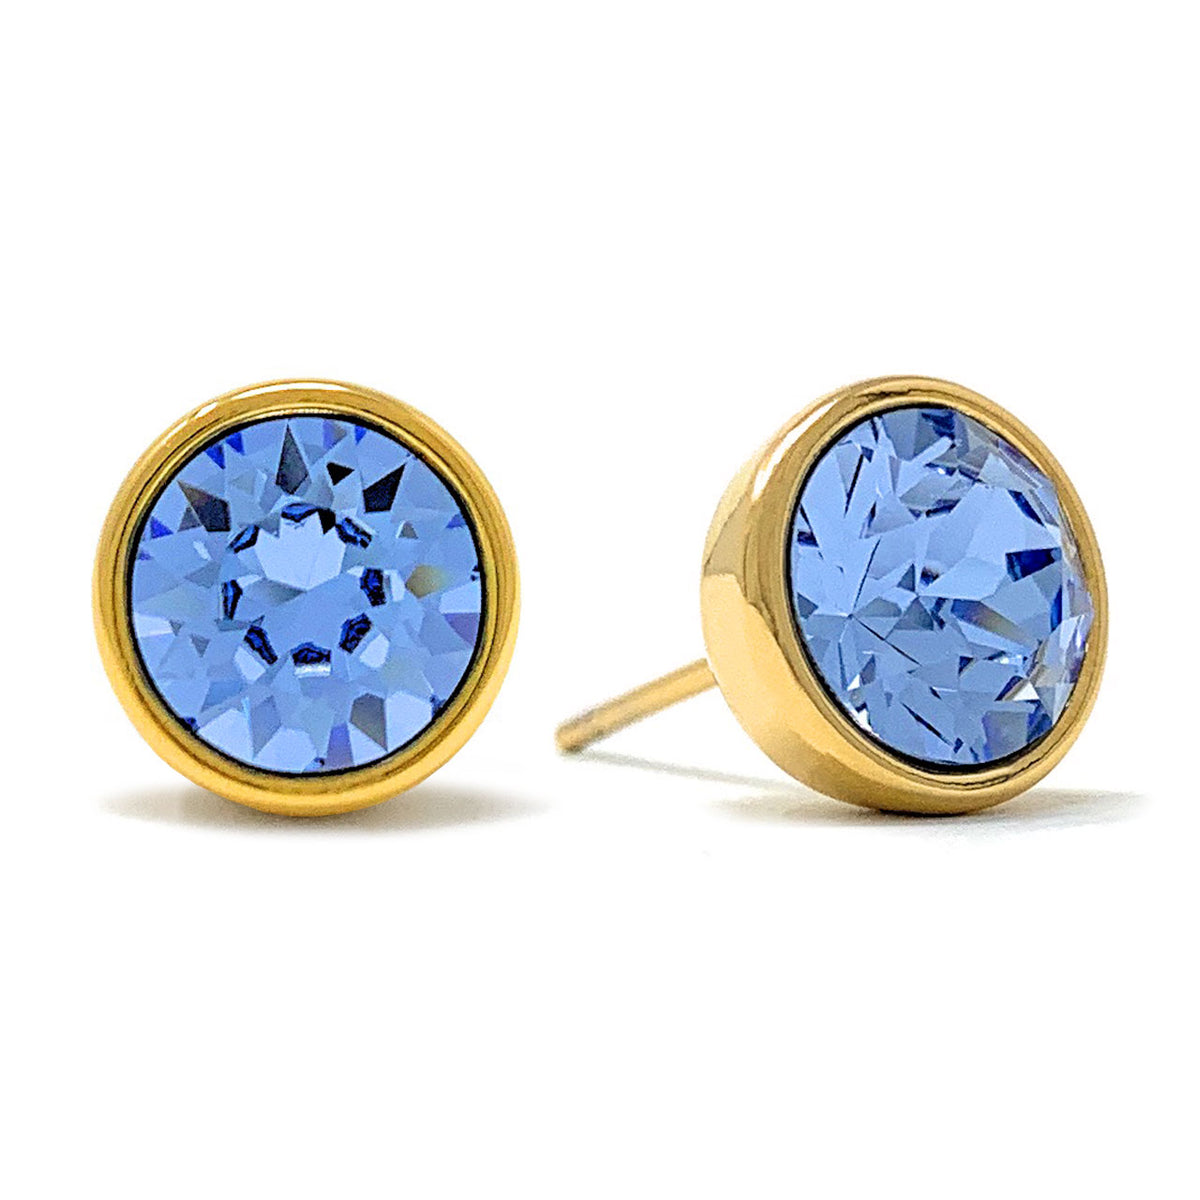 Harley Stud Earrings with Blue Light Sapphire Round Crystals from Swarovski Gold Plated - Ed Heart